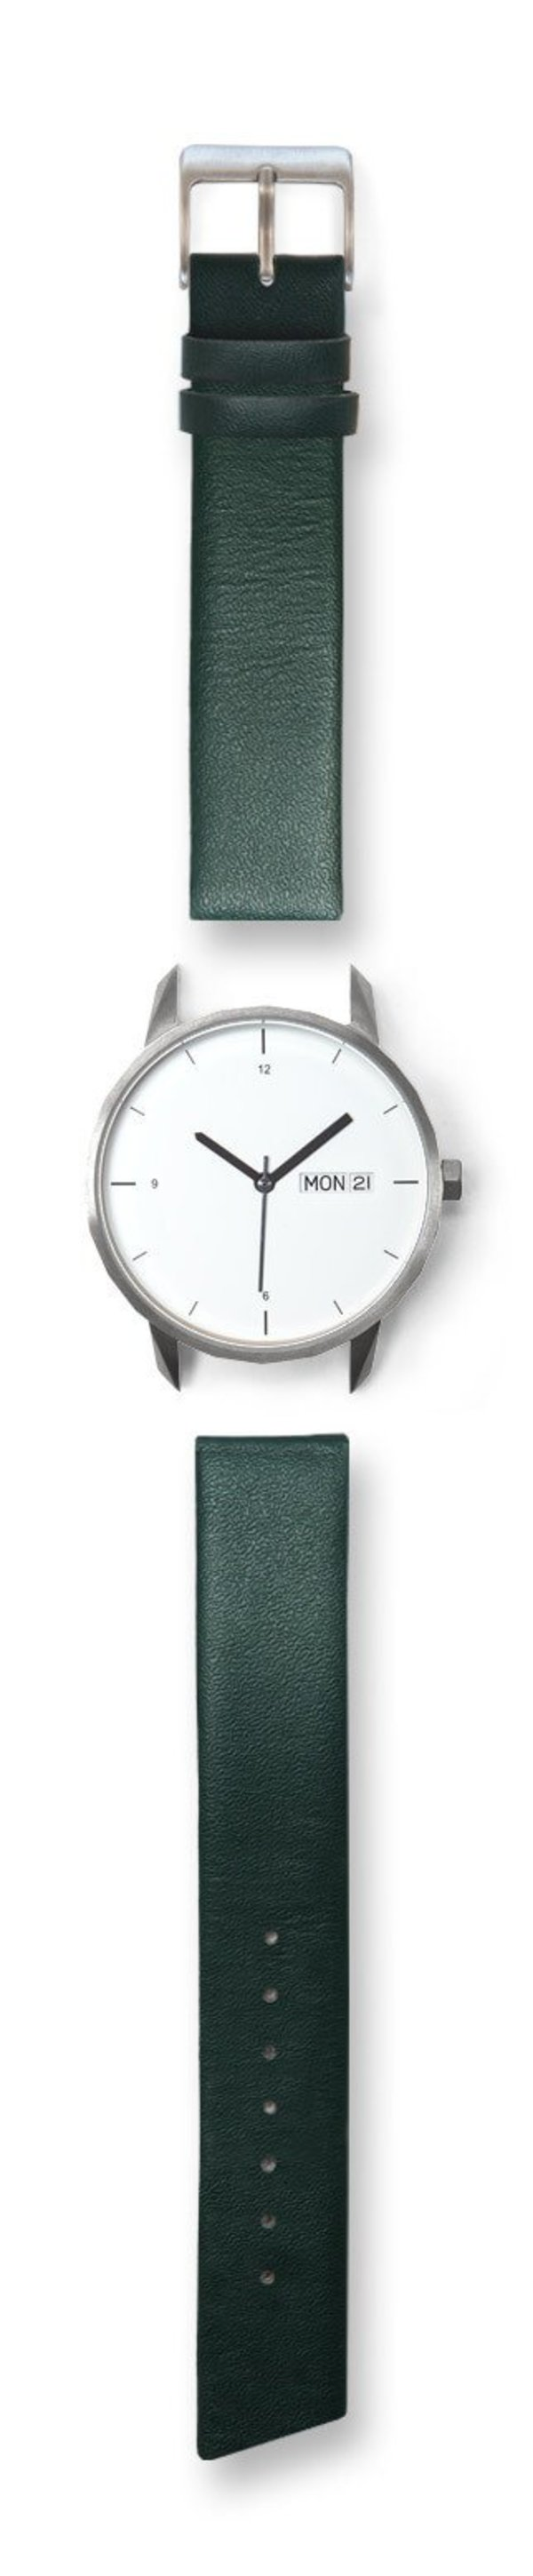 Tinker Watches Quick Release Strap Silver Watch - Green